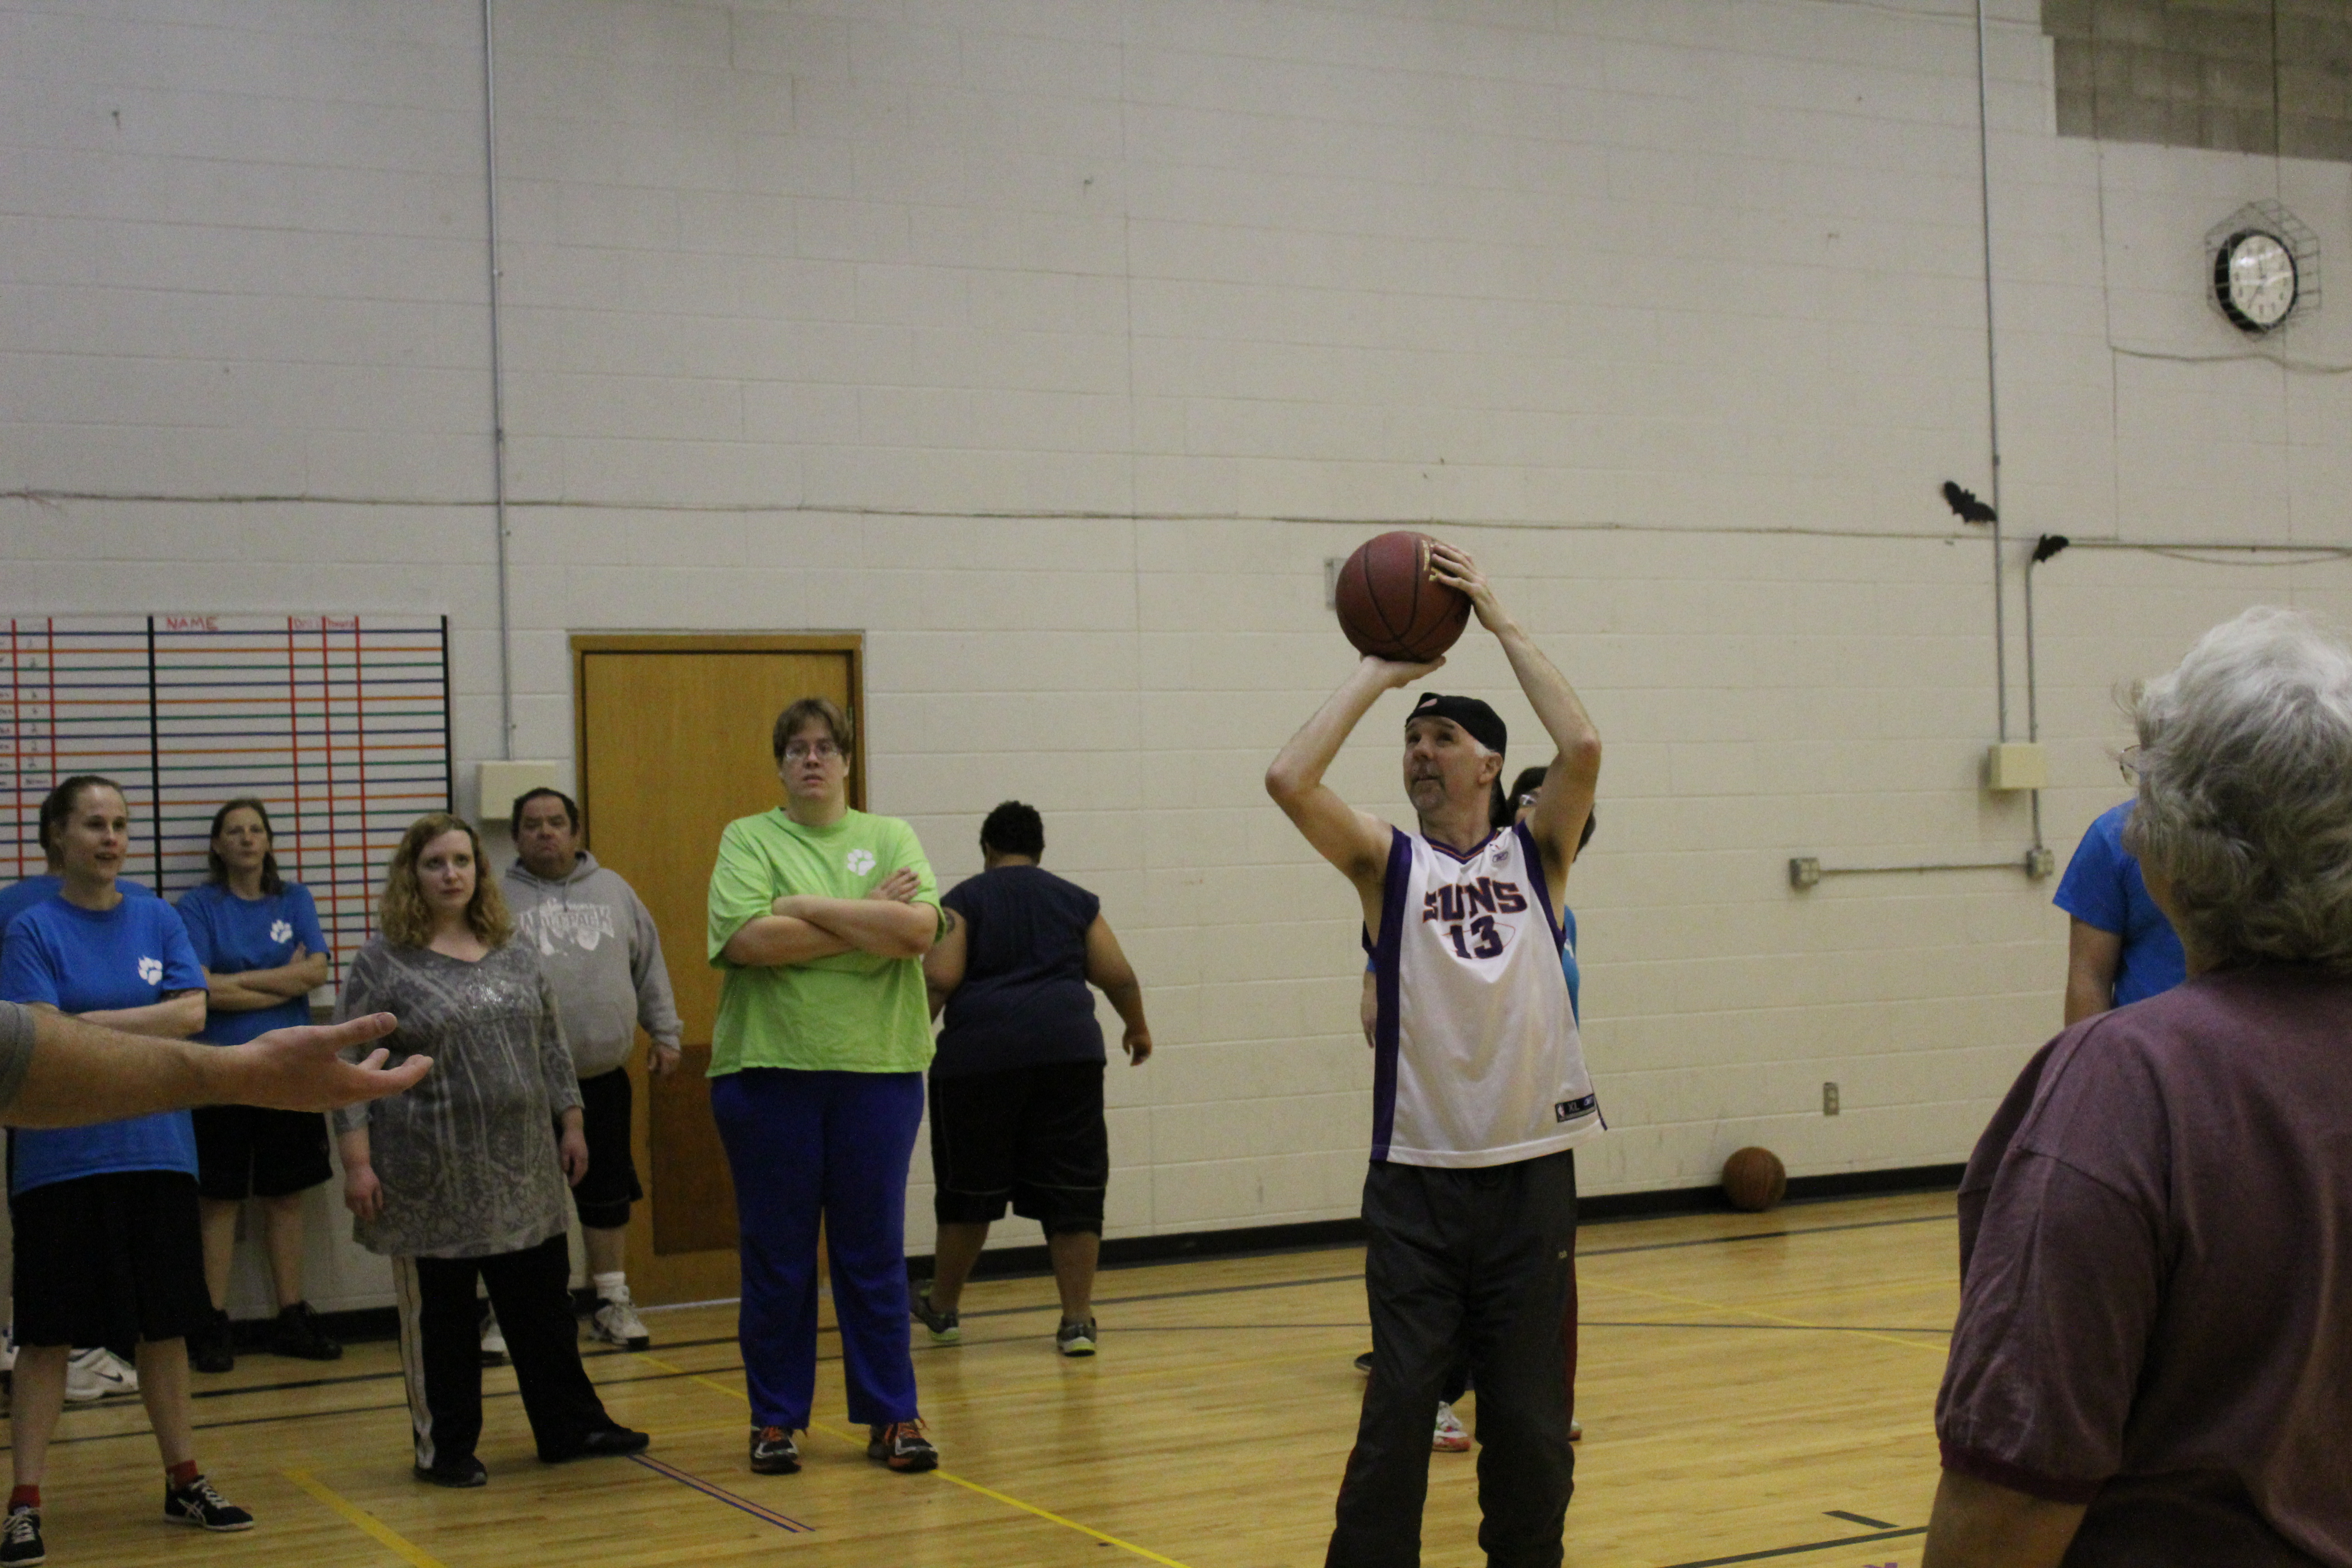 Shooting practice at basketball practice.